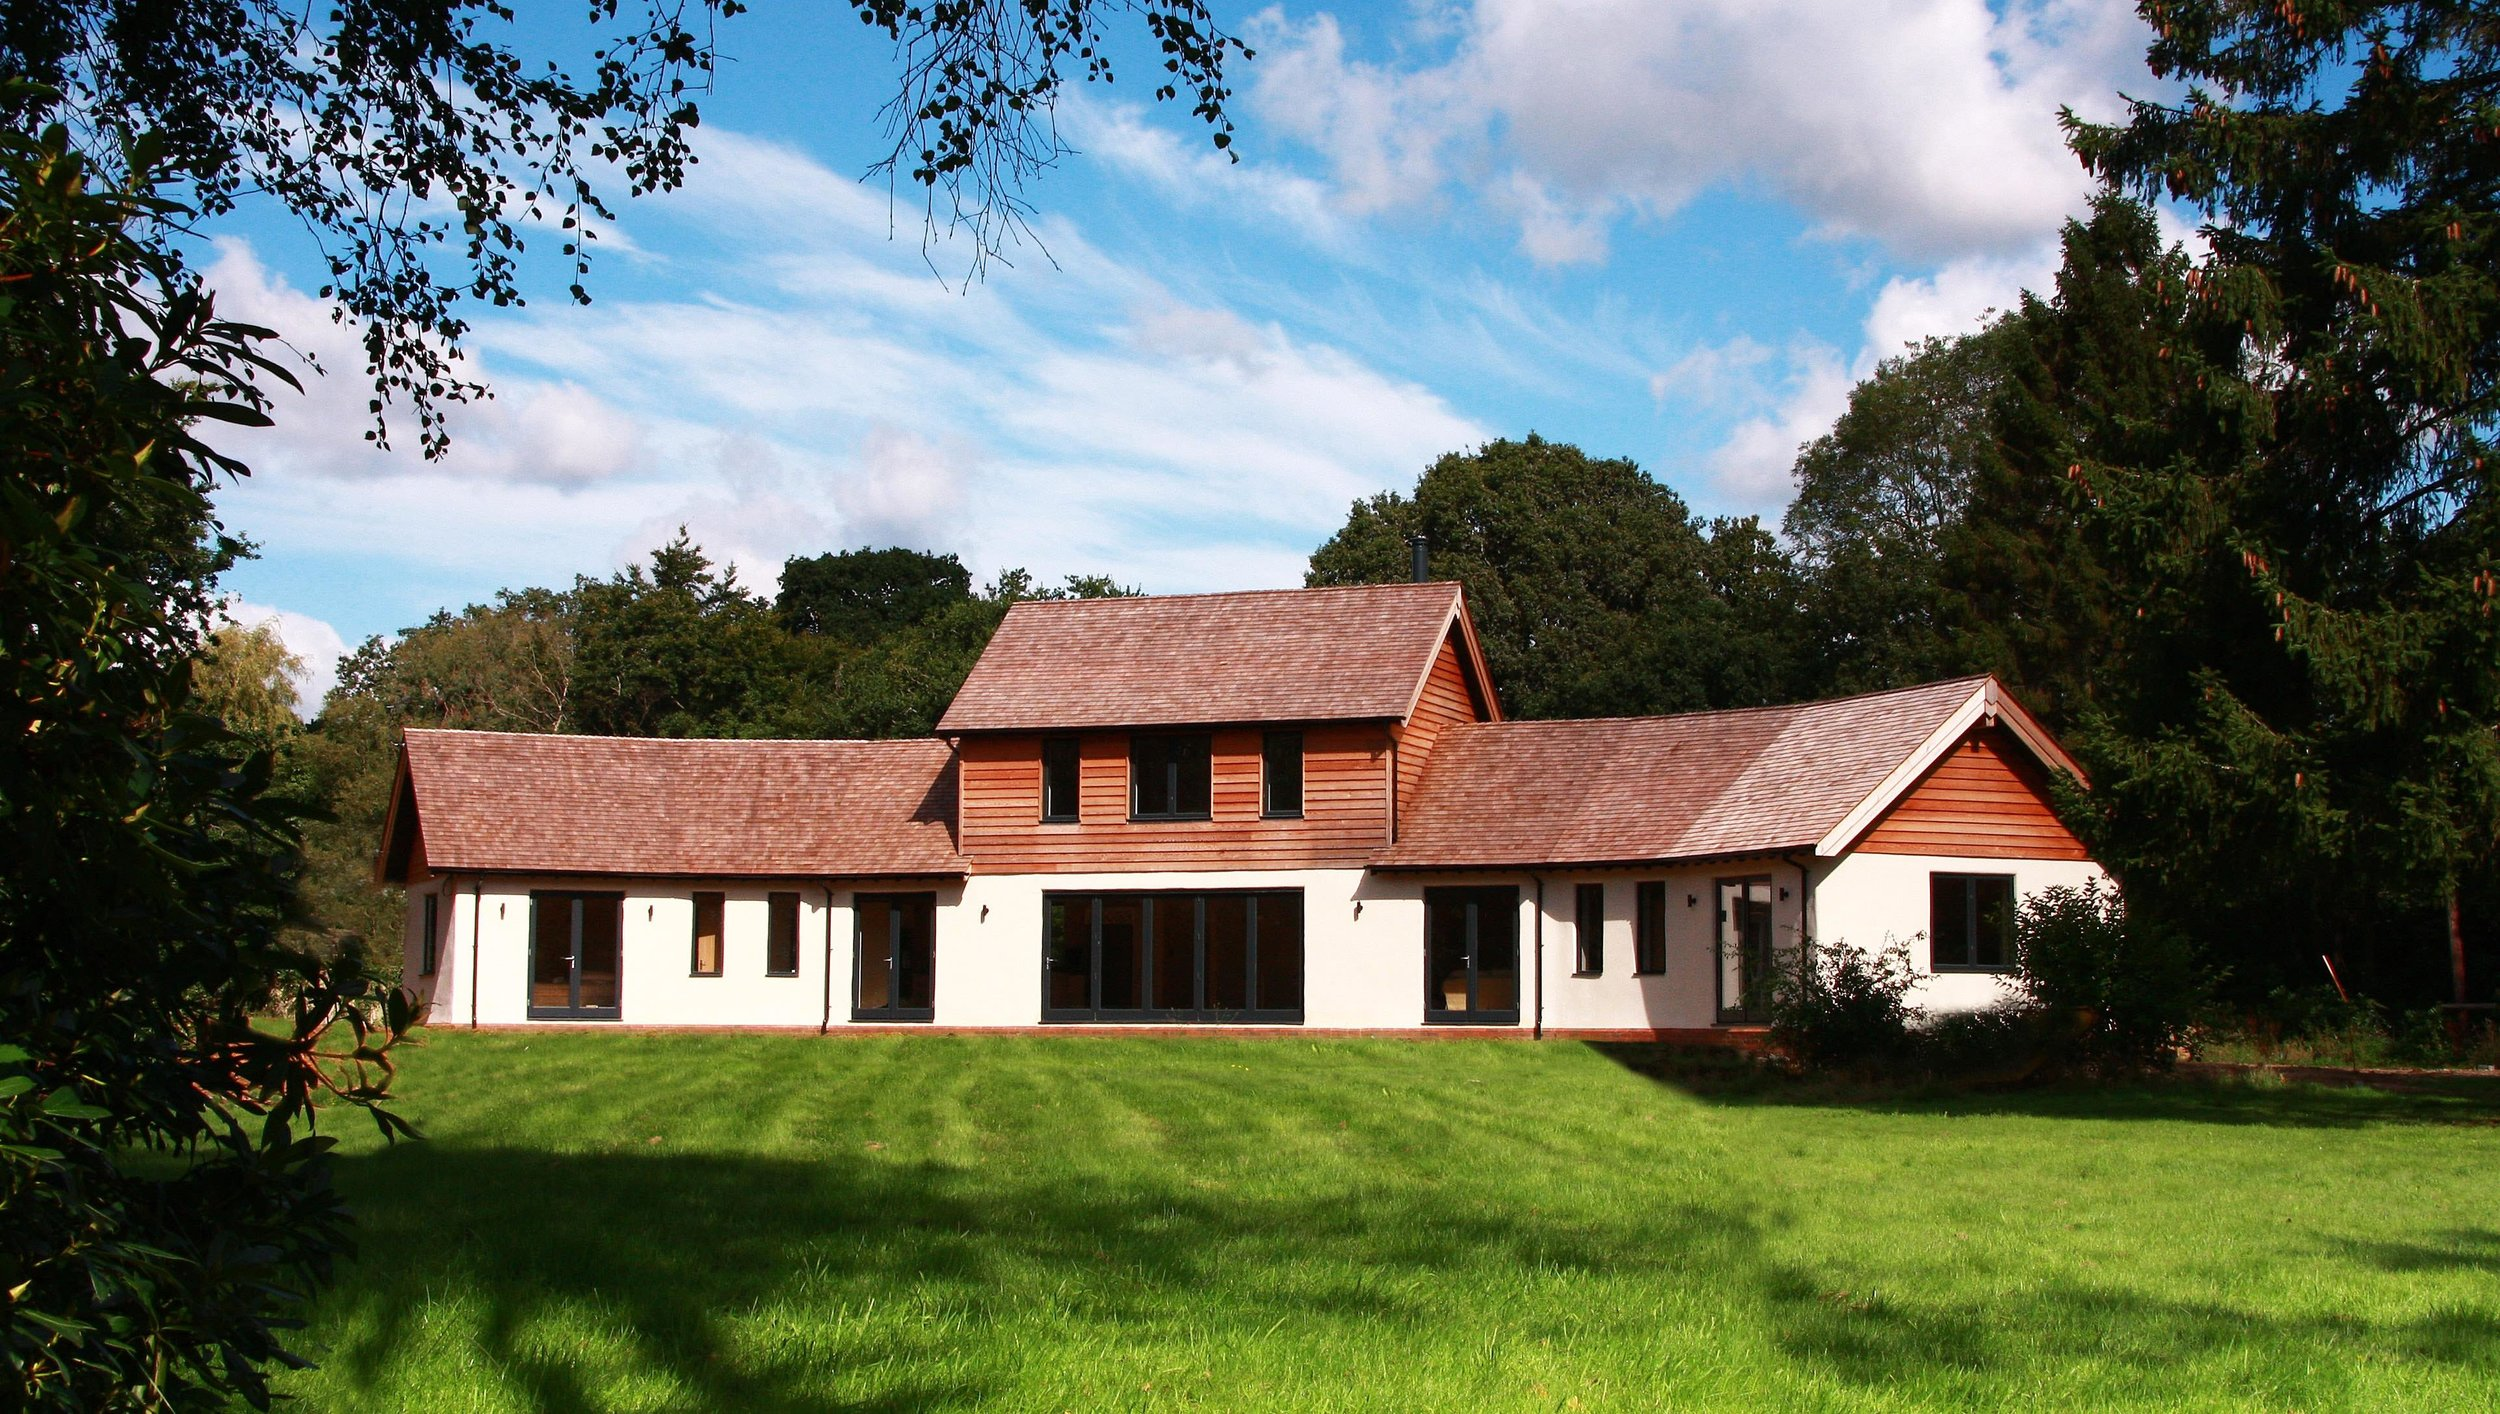 Copy of Pell-Stevens Architects Woodland House new Build